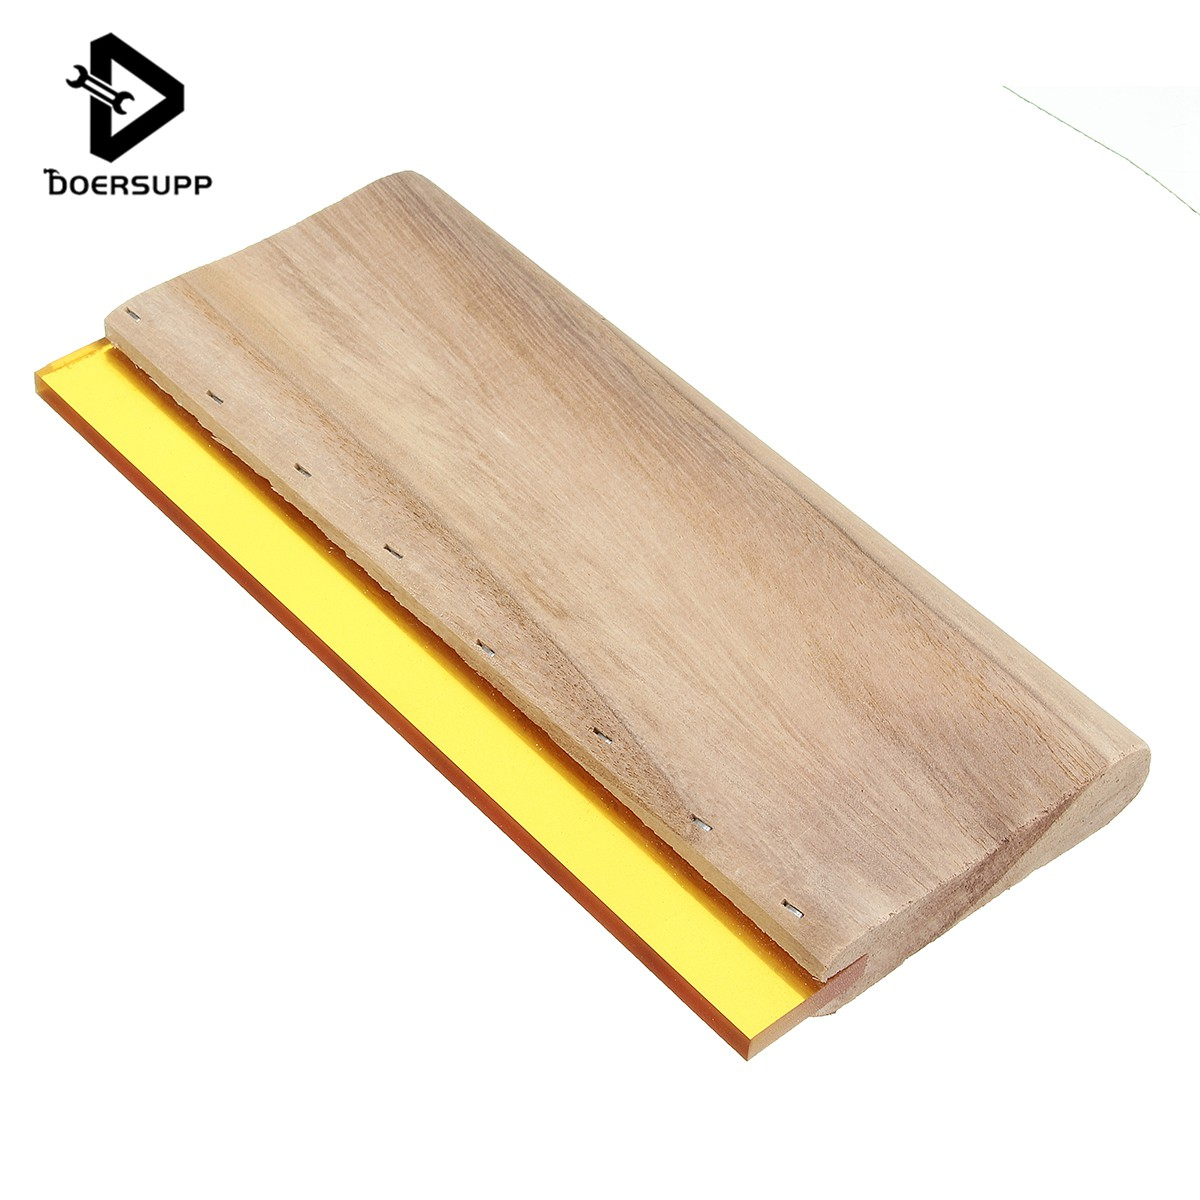 Doersupp 9'' 22cm High Quality Silk Screen Printing Wood Wooden Squeegee Ink Scaper Scratch Board Tool free shipping discount cheap 2 pcs silk screen printing squeegee 24cm 33cm 9 4 13inch ink scaper tools materials